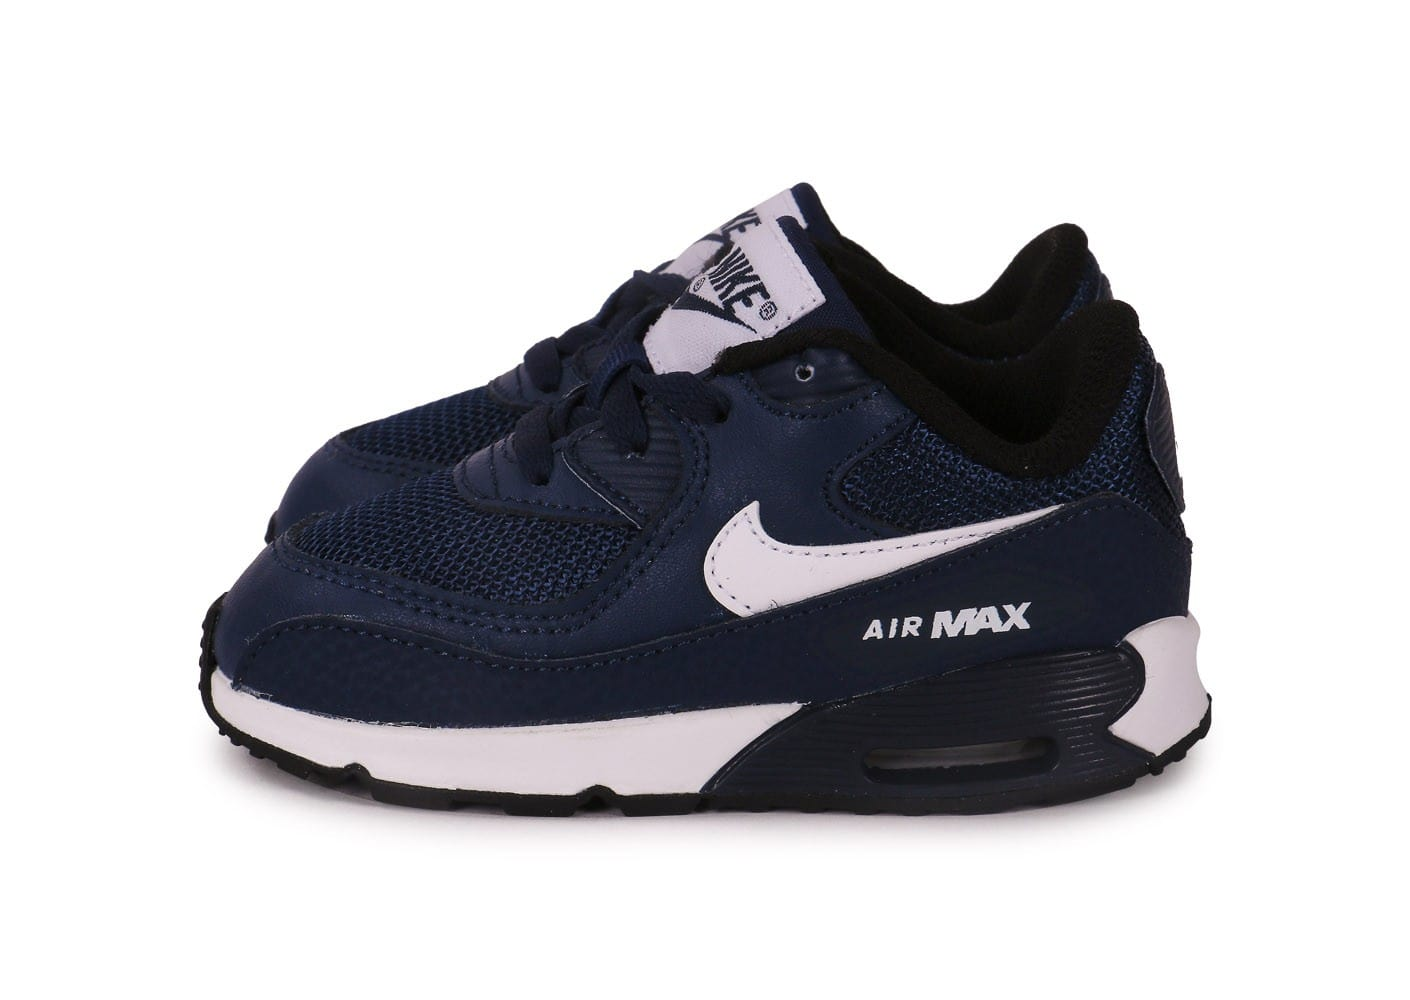 chaussures nike air max soldes nike shox prix de ballo. Black Bedroom Furniture Sets. Home Design Ideas